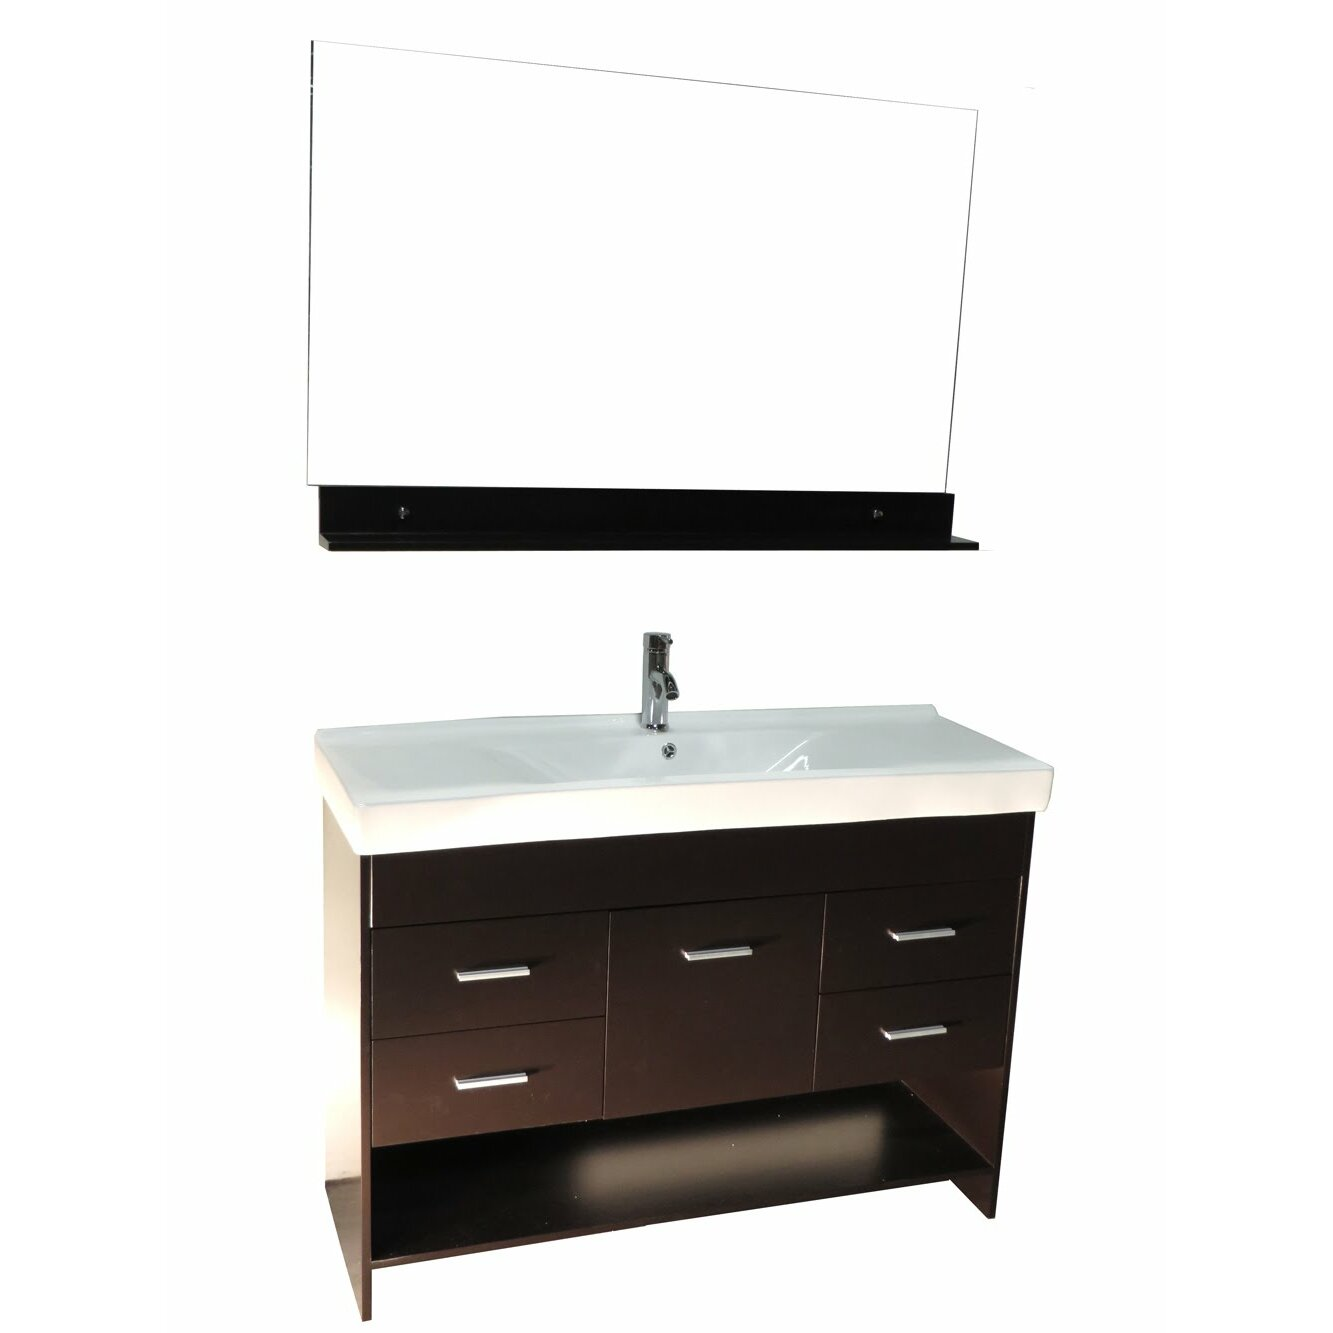 kokols 48 contemporary single ceramic sink bathroom vanity set wf 127